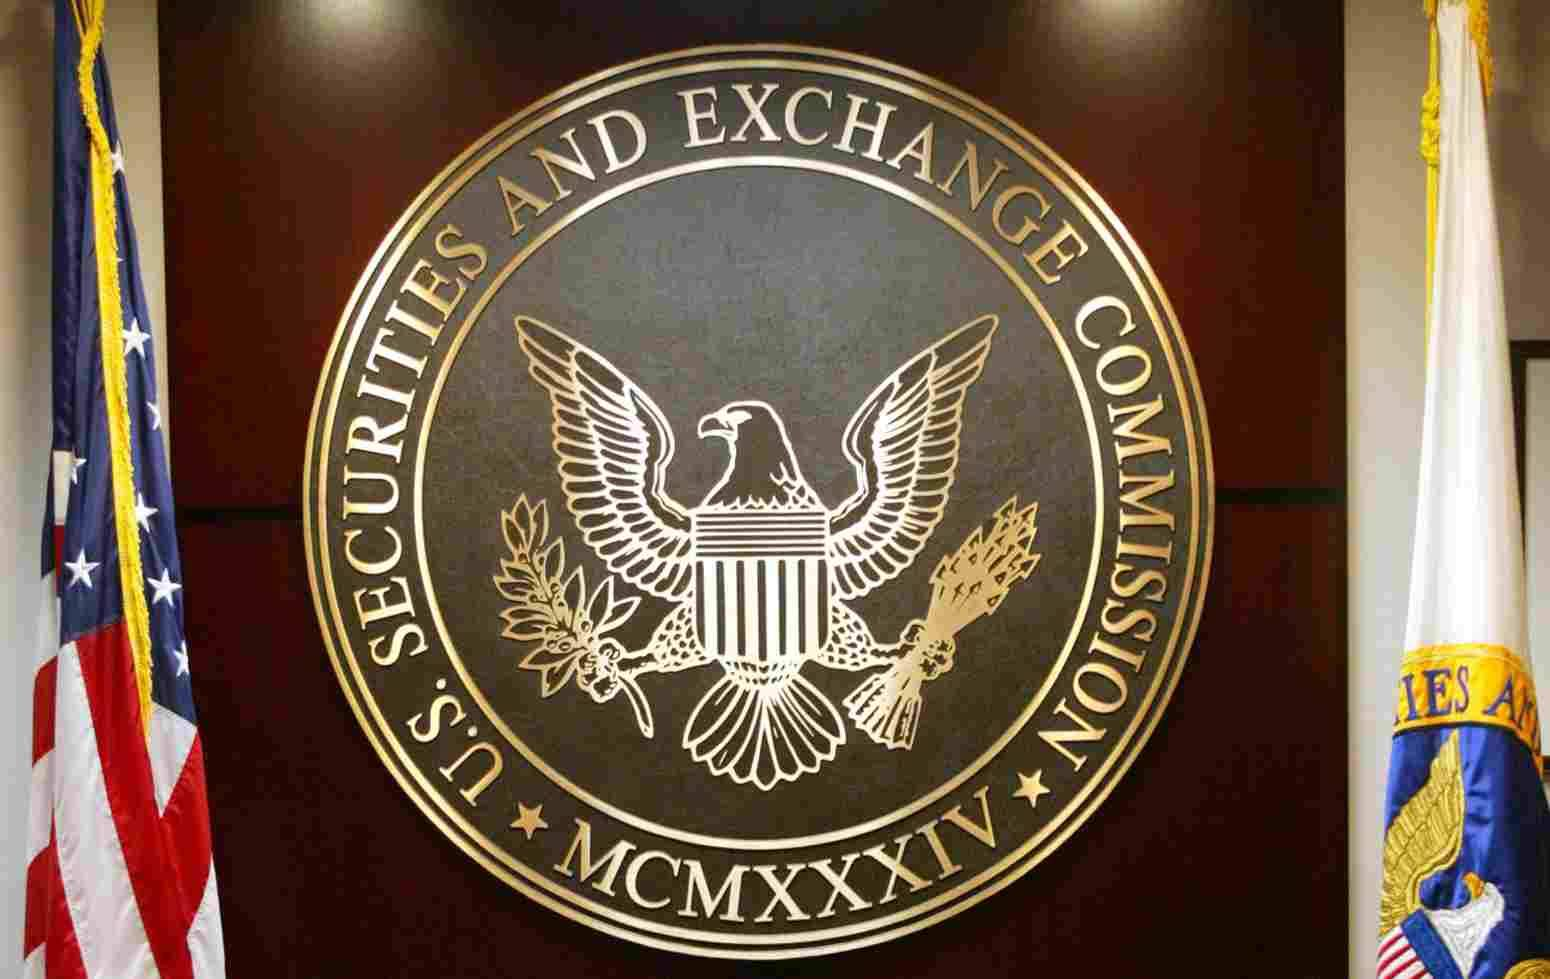 SEC's Division of Examinations issues Risk Alert on digital assets